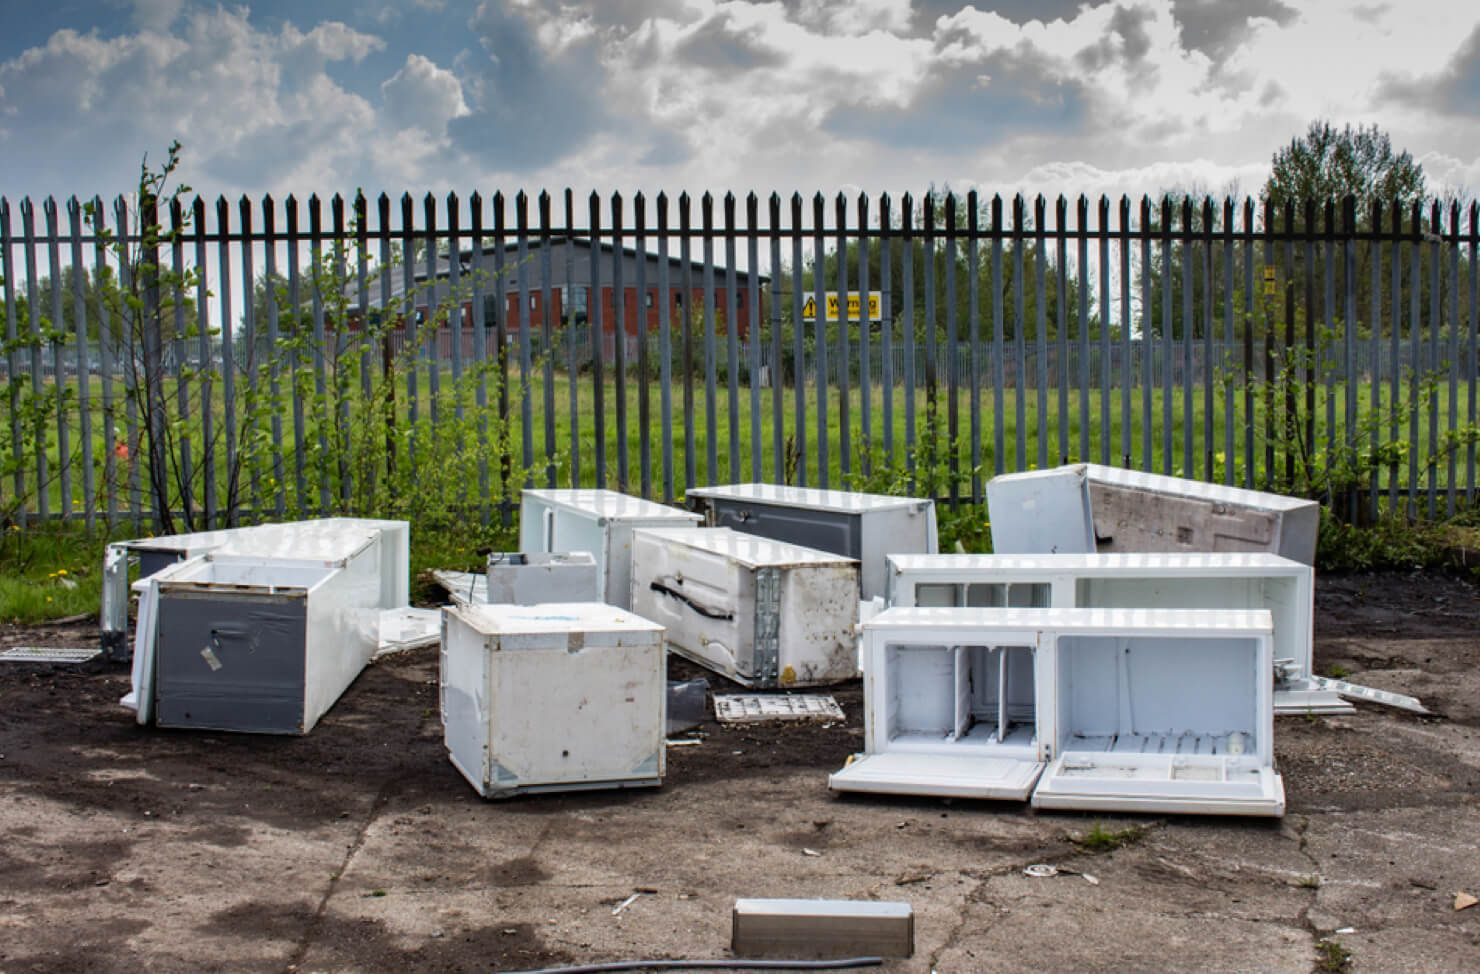 White goods fly-tipping